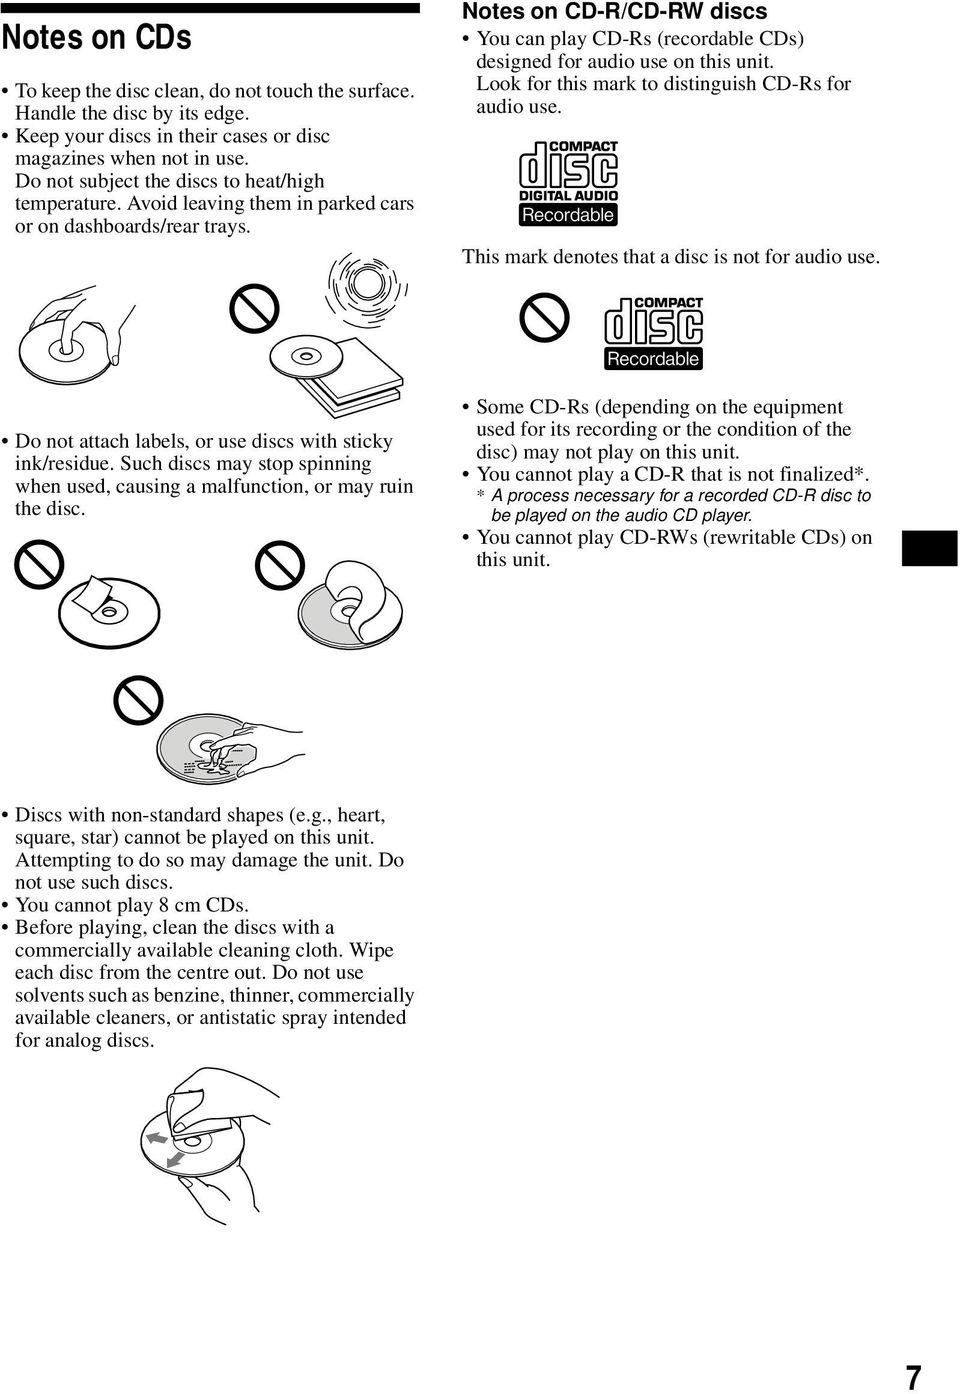 Notes on CD-R/CD-RW discs You can play CD-Rs (recordable CDs) designed for audio use on this unit. Look for this mark to distinguish CD-Rs for audio use.